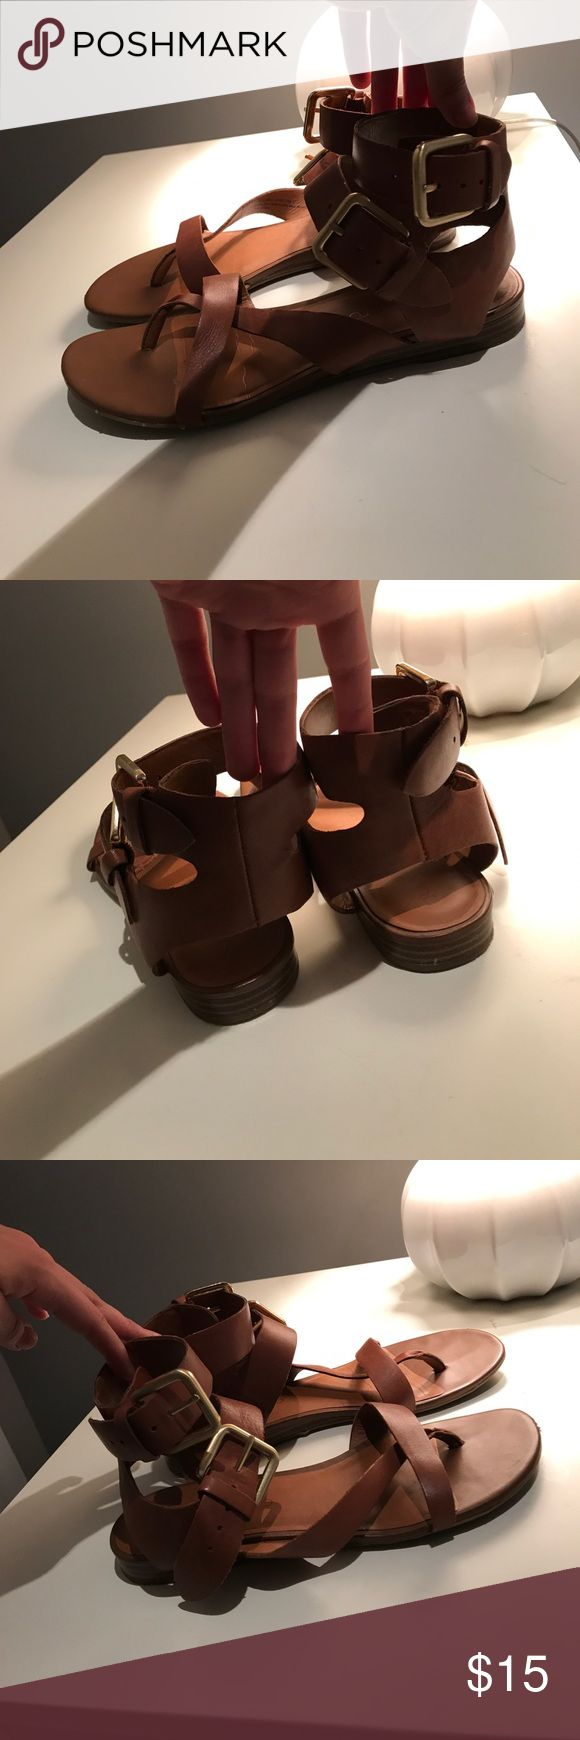 Franco sarto sandals Cute brown sandals, in great condition! Franco Sarto Shoes Sandals